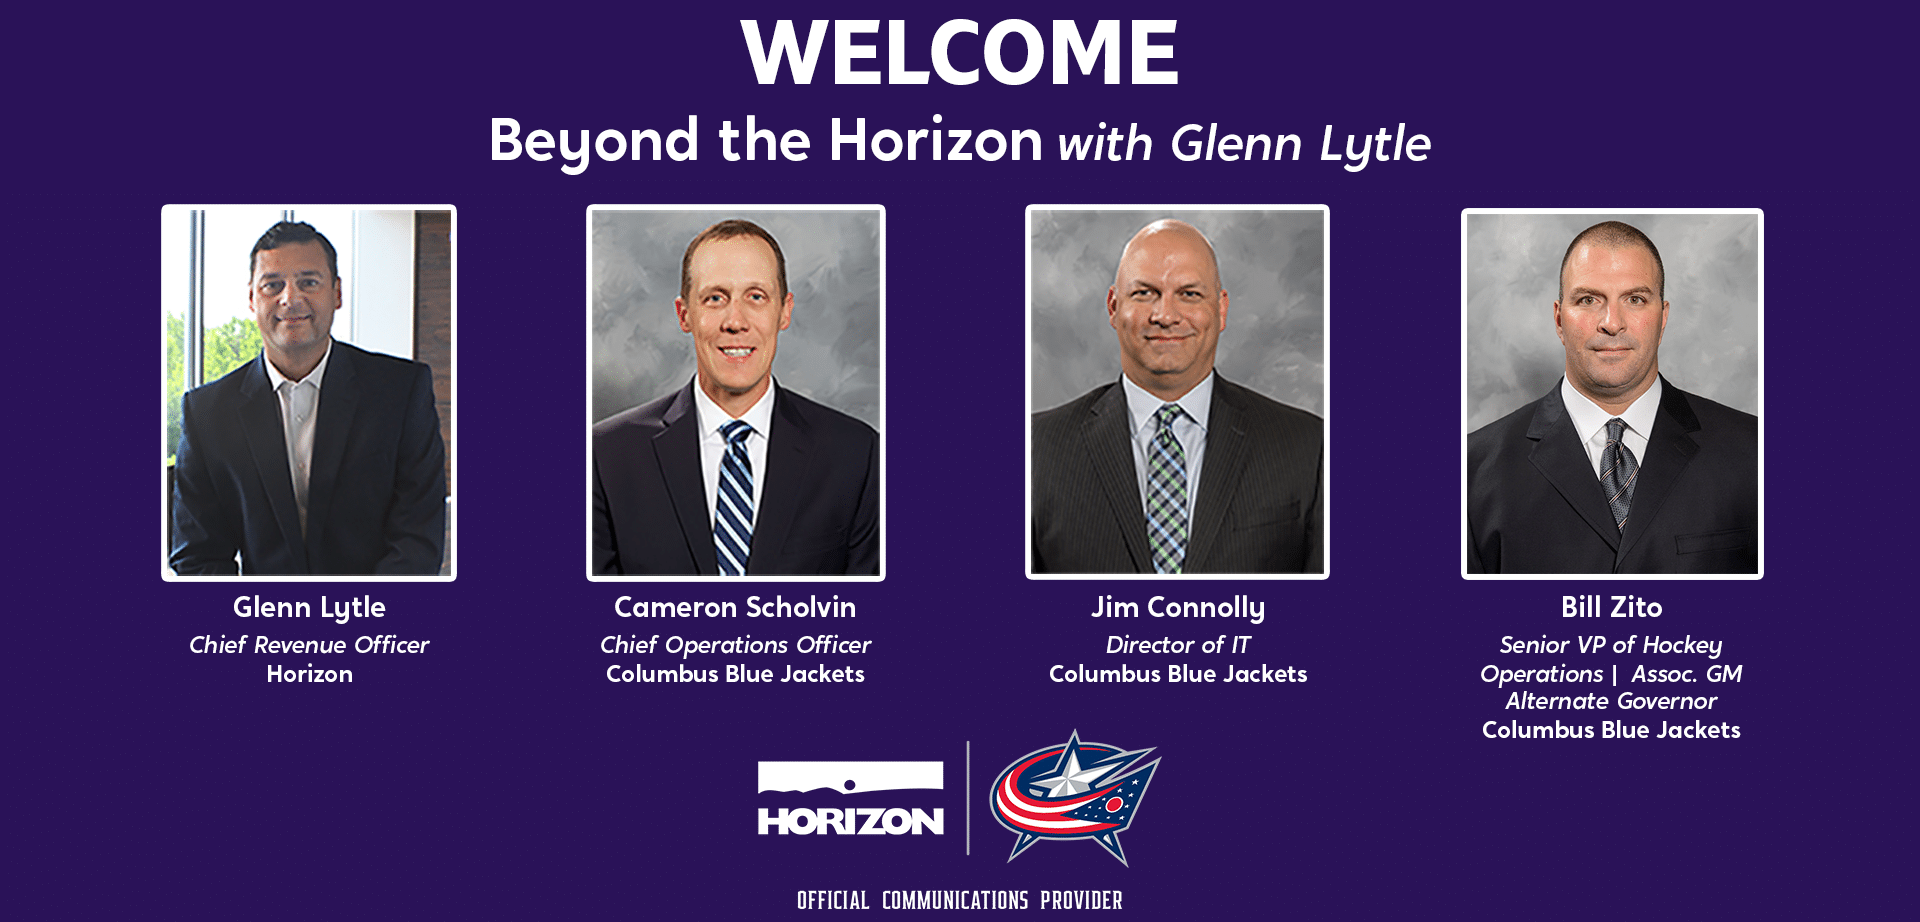 Welcome Columbus Blue Jackets to Beyond the Horizon